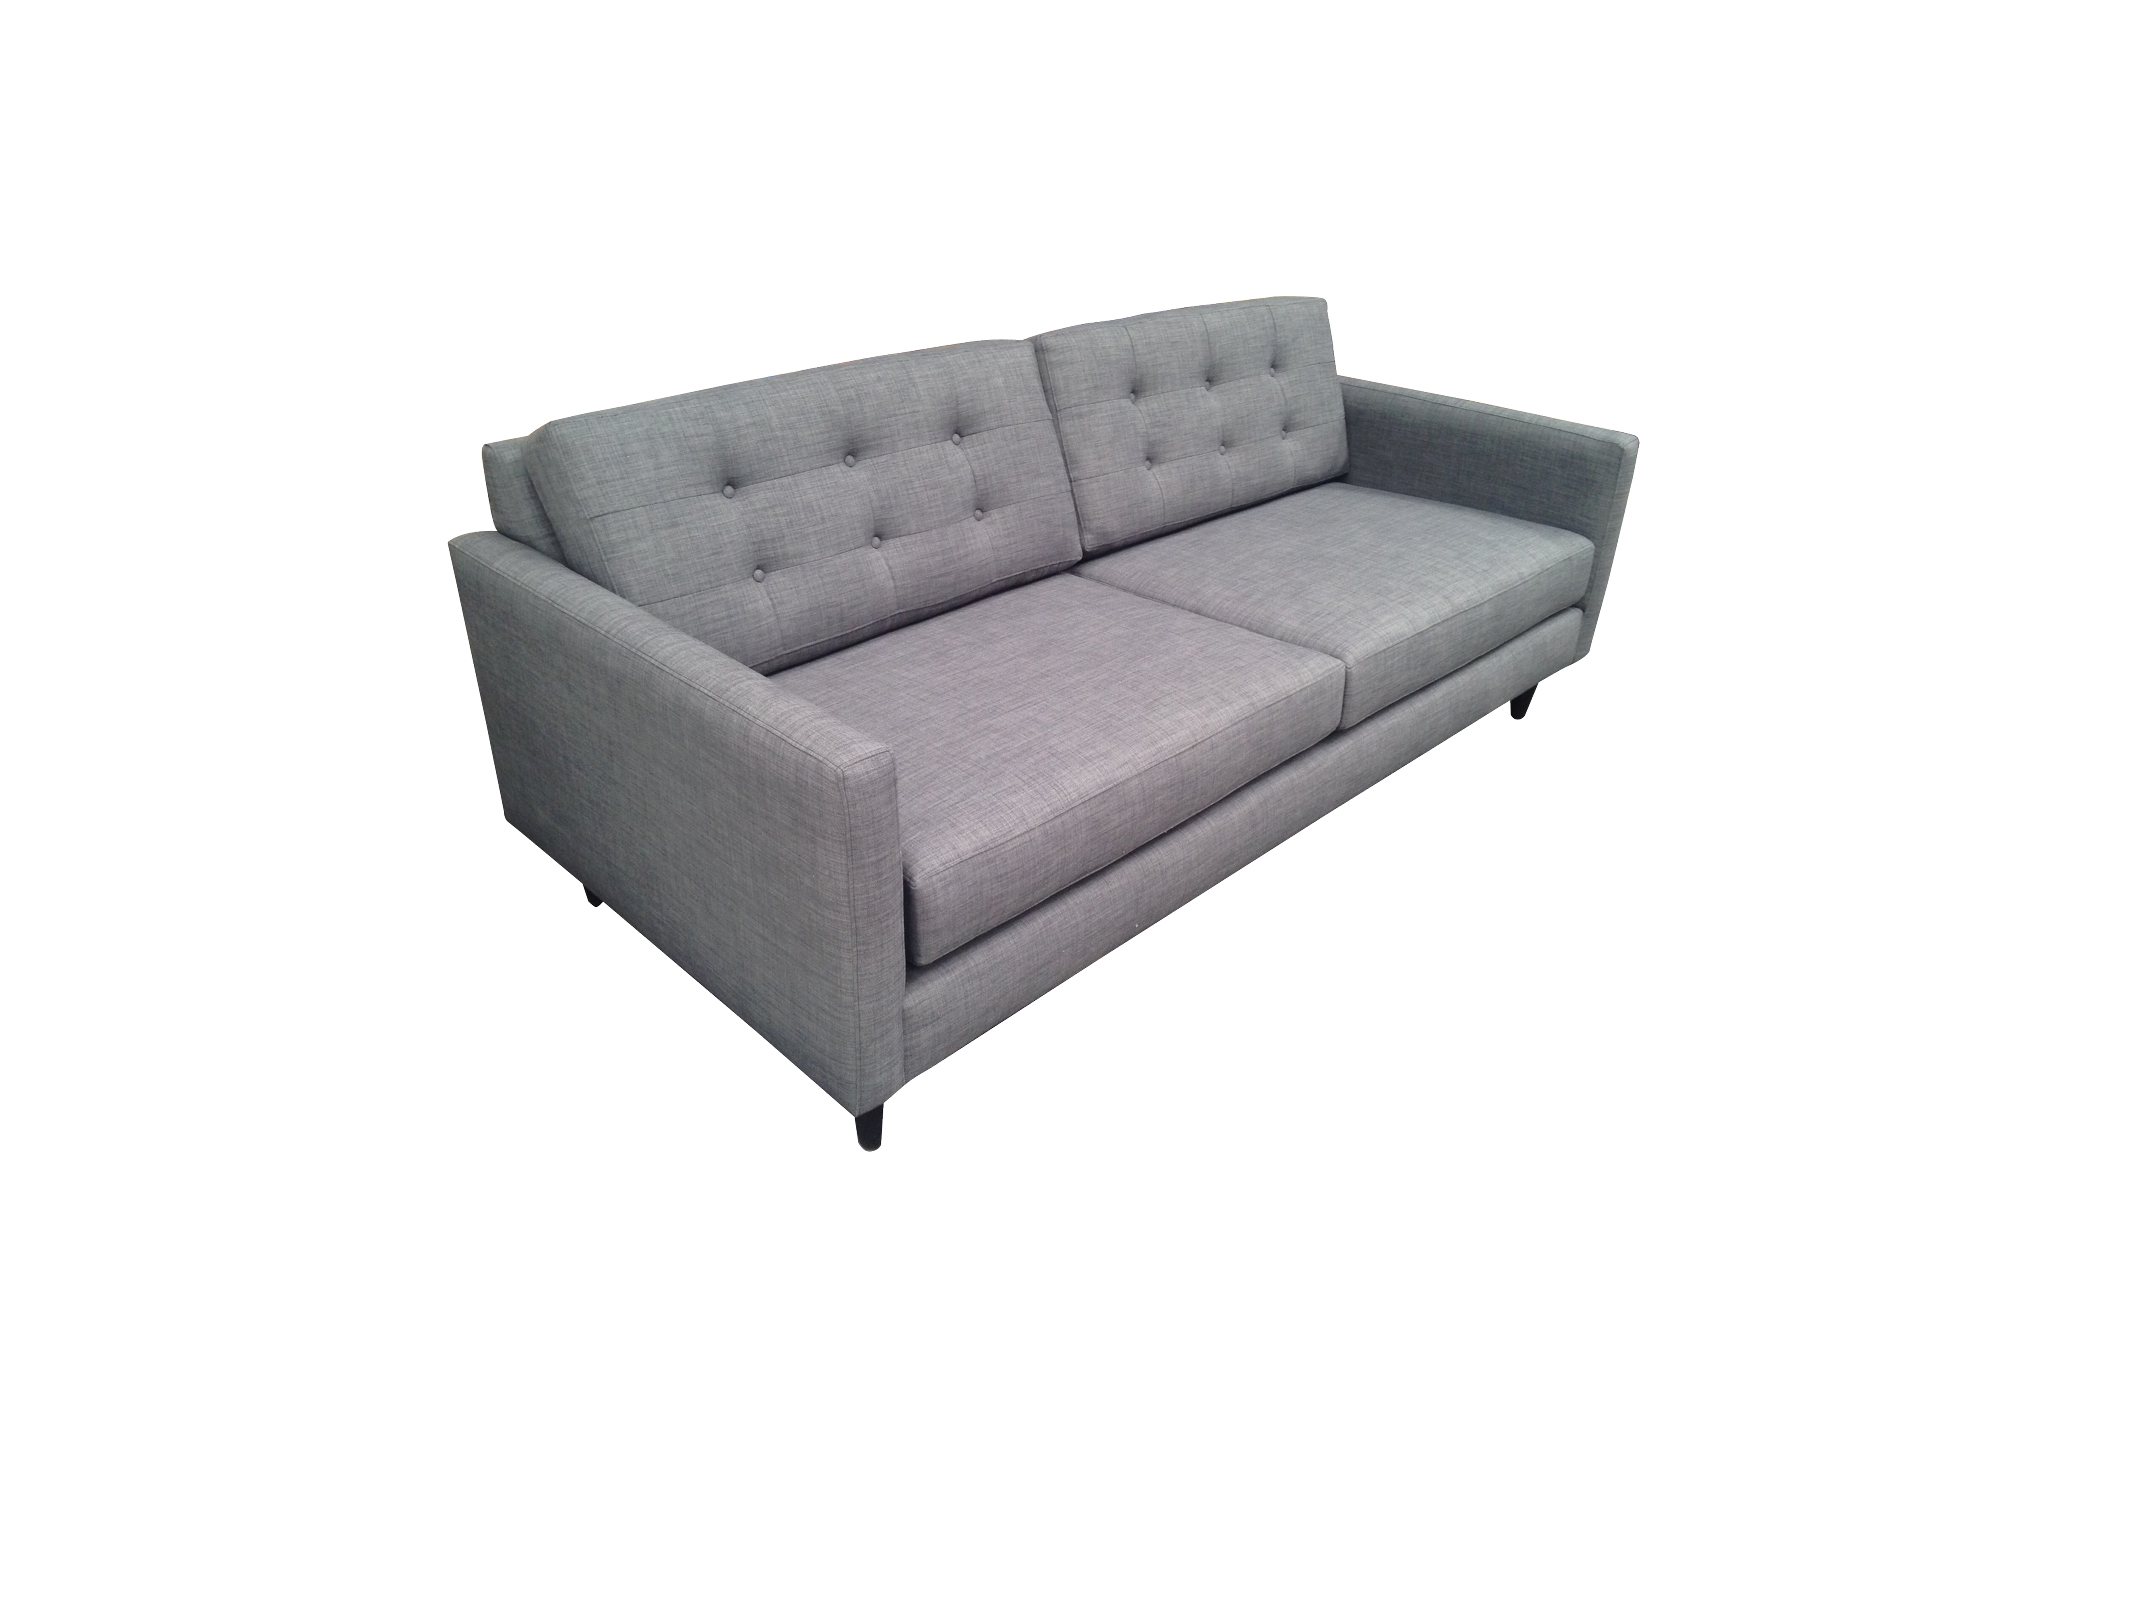 oxford_sofa_2.jpg